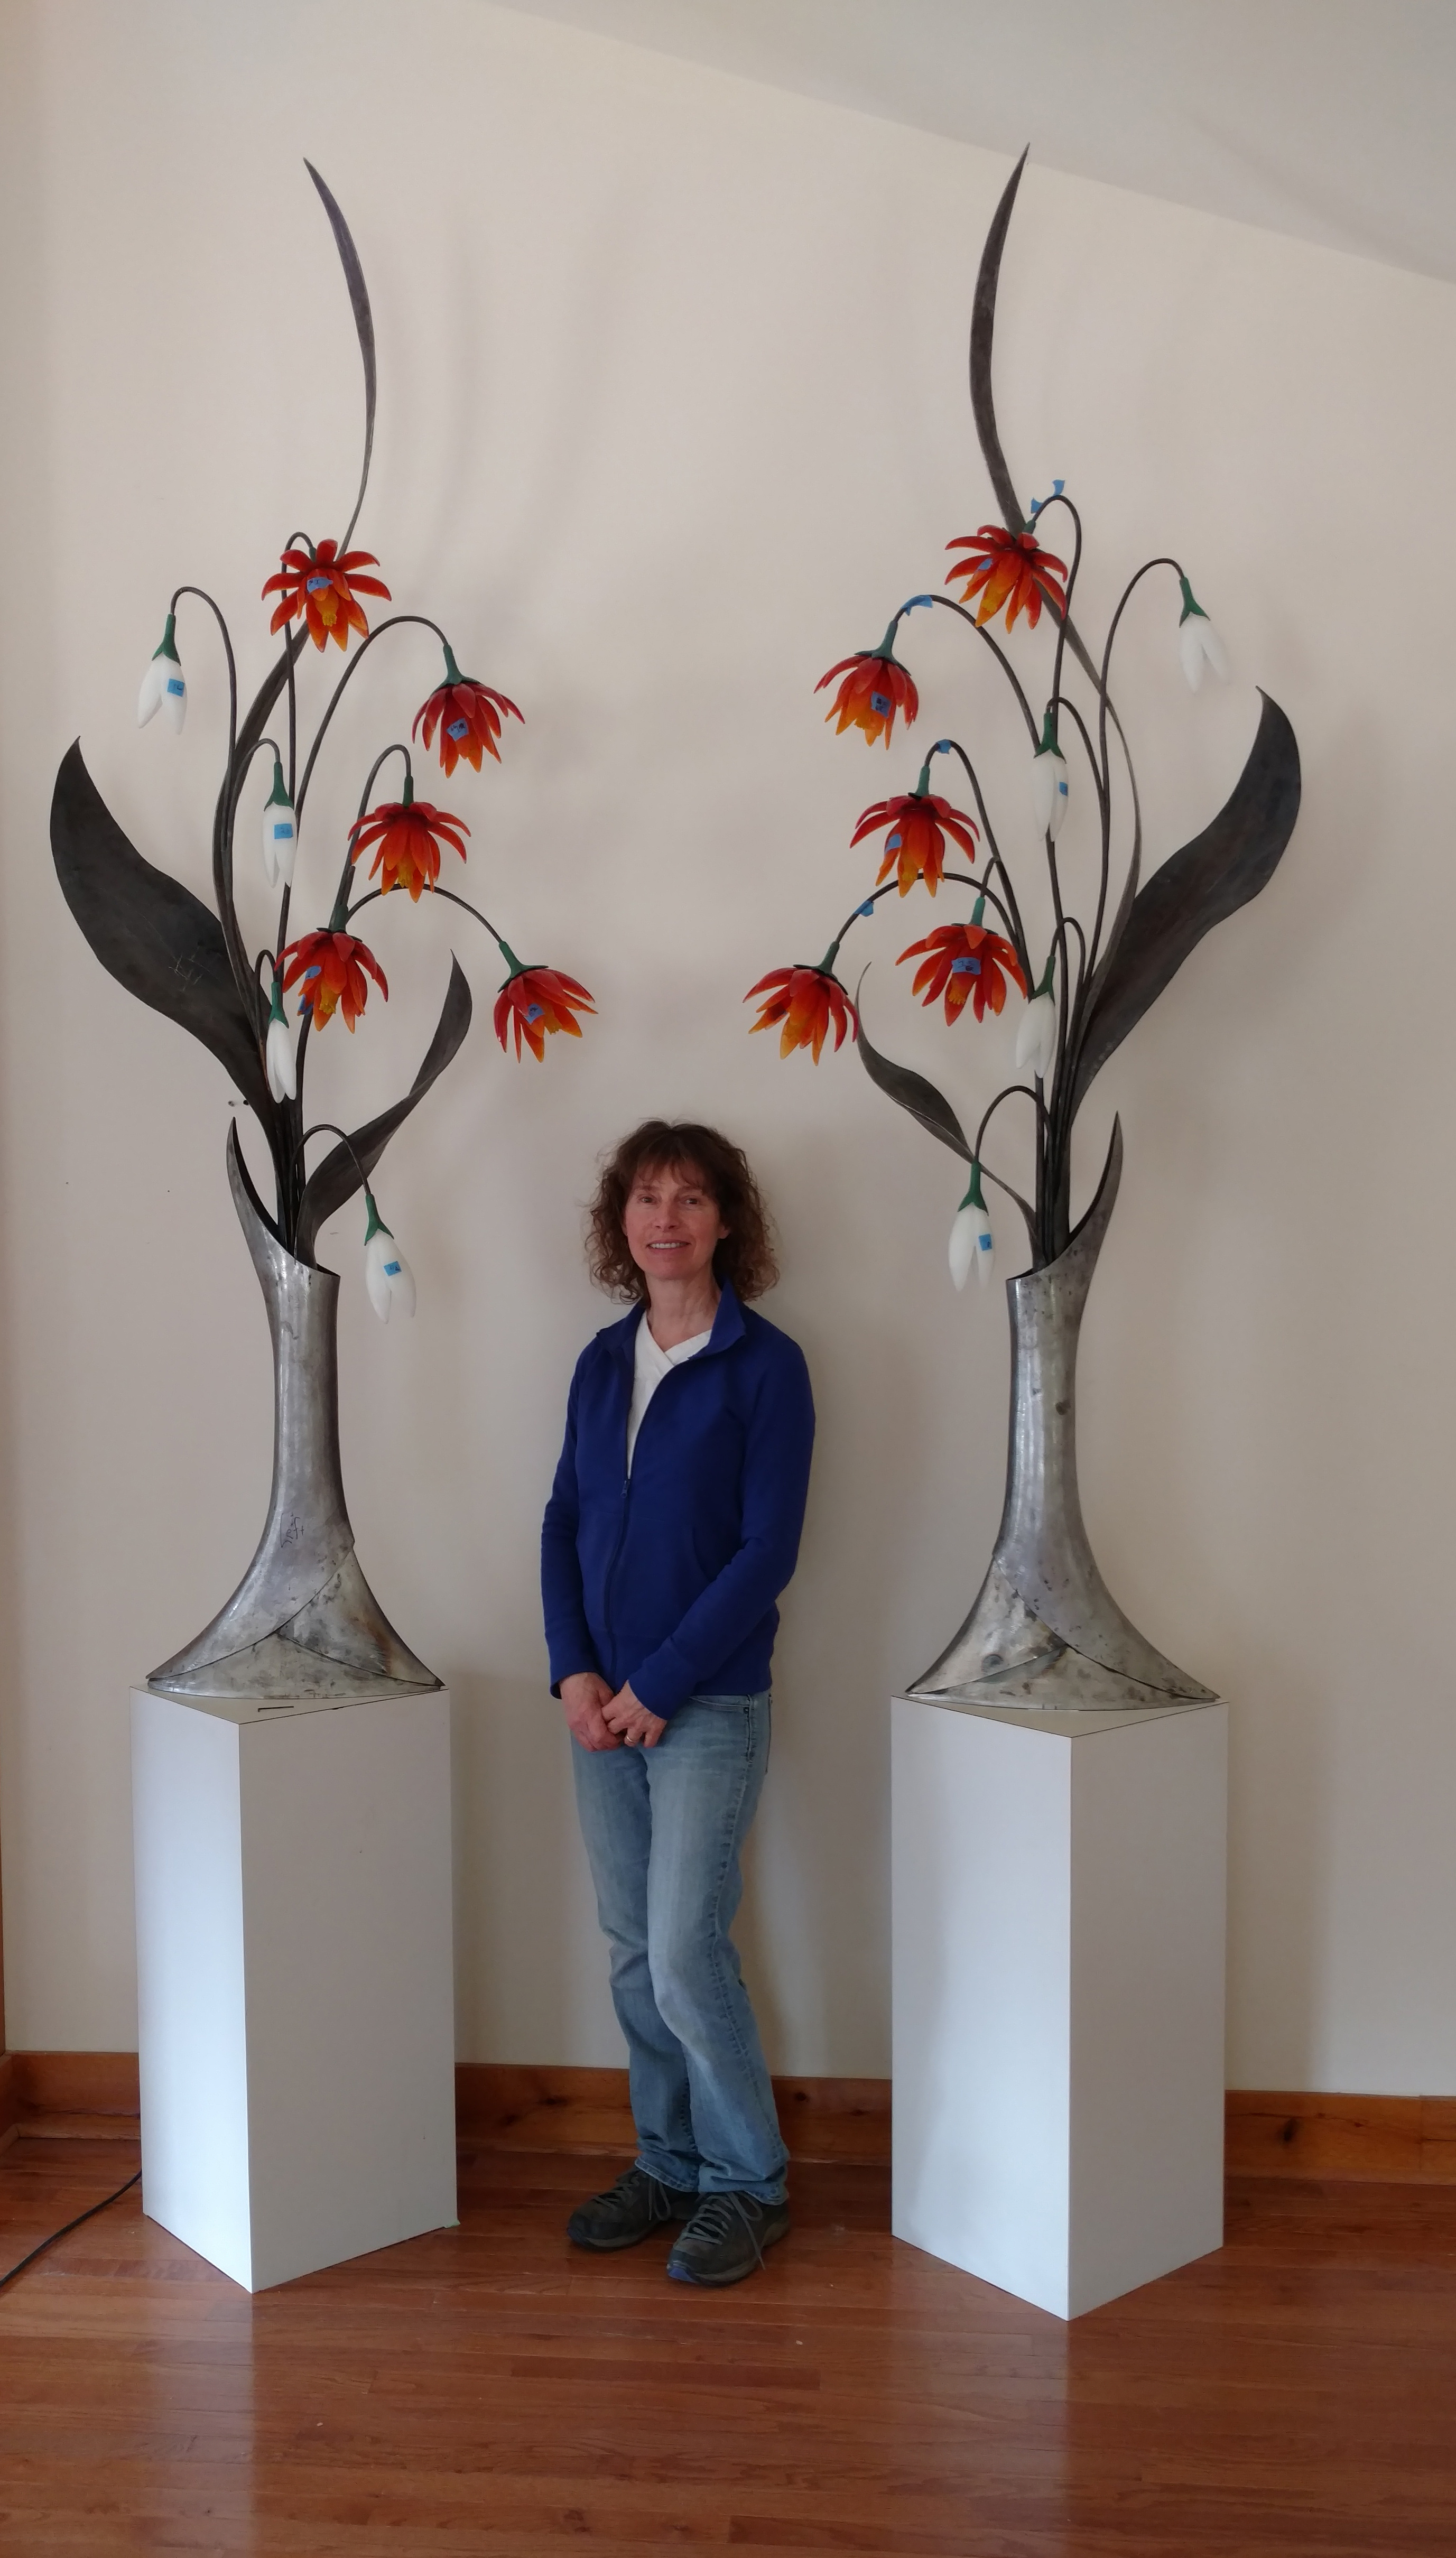 Sculpture of two seven and a half feet tall glass and steel flower arrangements shown with standing person for scale.